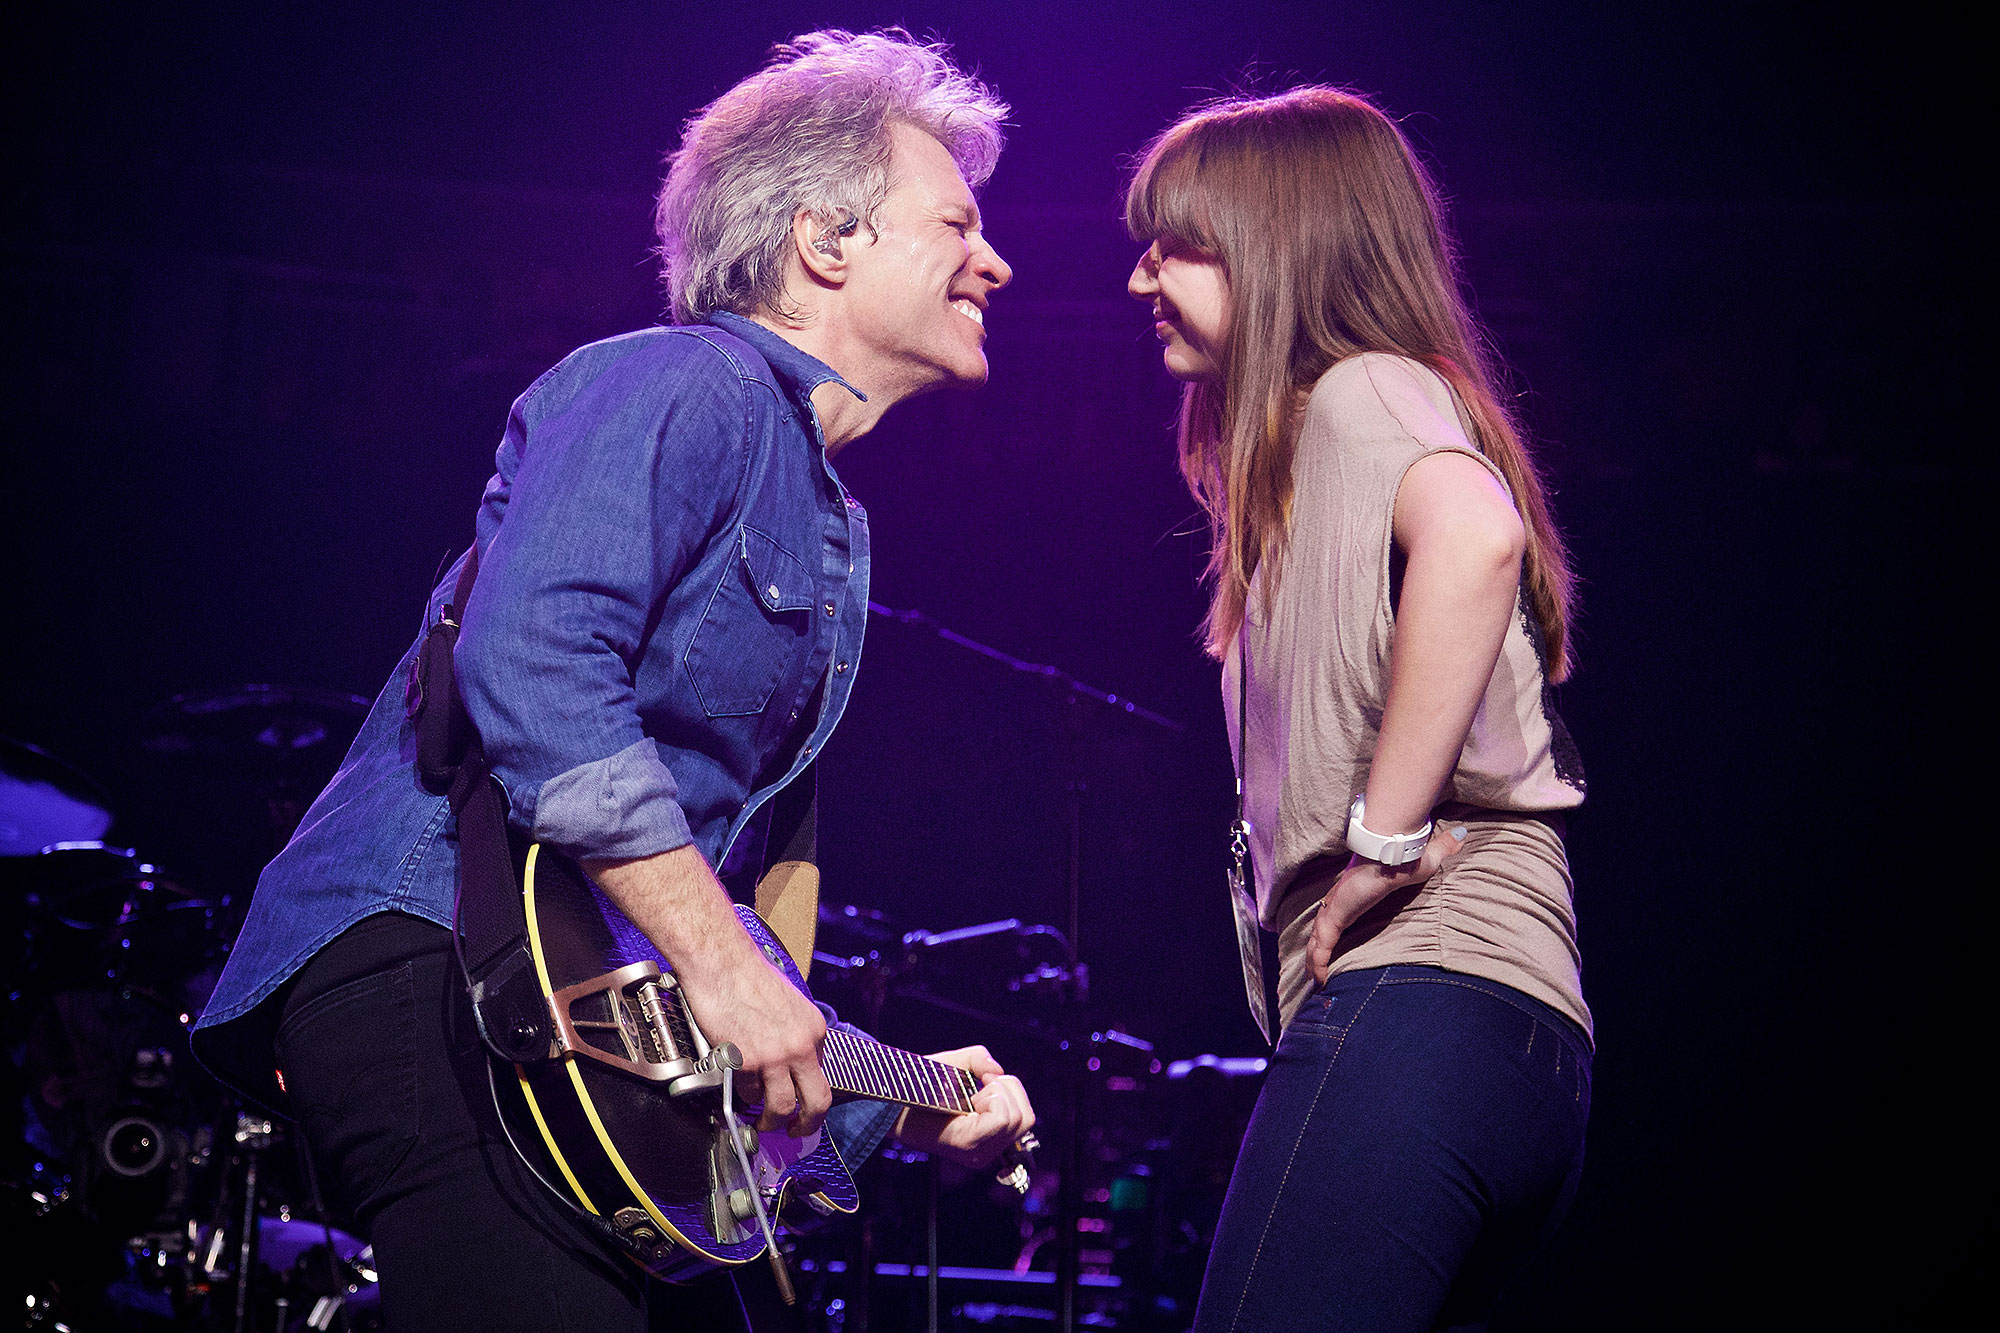 """Mandatory photo credit: Photo by David Bergman / TourPhotographer.com for Bon Jovi February 25, 2017 -- During the song, """"I Got the Girl,"""" Jon Bon Jovi dances with his daughter Stephanie Bongiovi, 23, on stage at T-Mobile Arena in Las Vegas, NV during his band's """"This House is Not For Sale"""" tour. He wrote the song when she was a child and she danced with him on stage when she was around seven years old. It was a surprise for the Las Vegas crowd when he played the song and called her out to join him."""